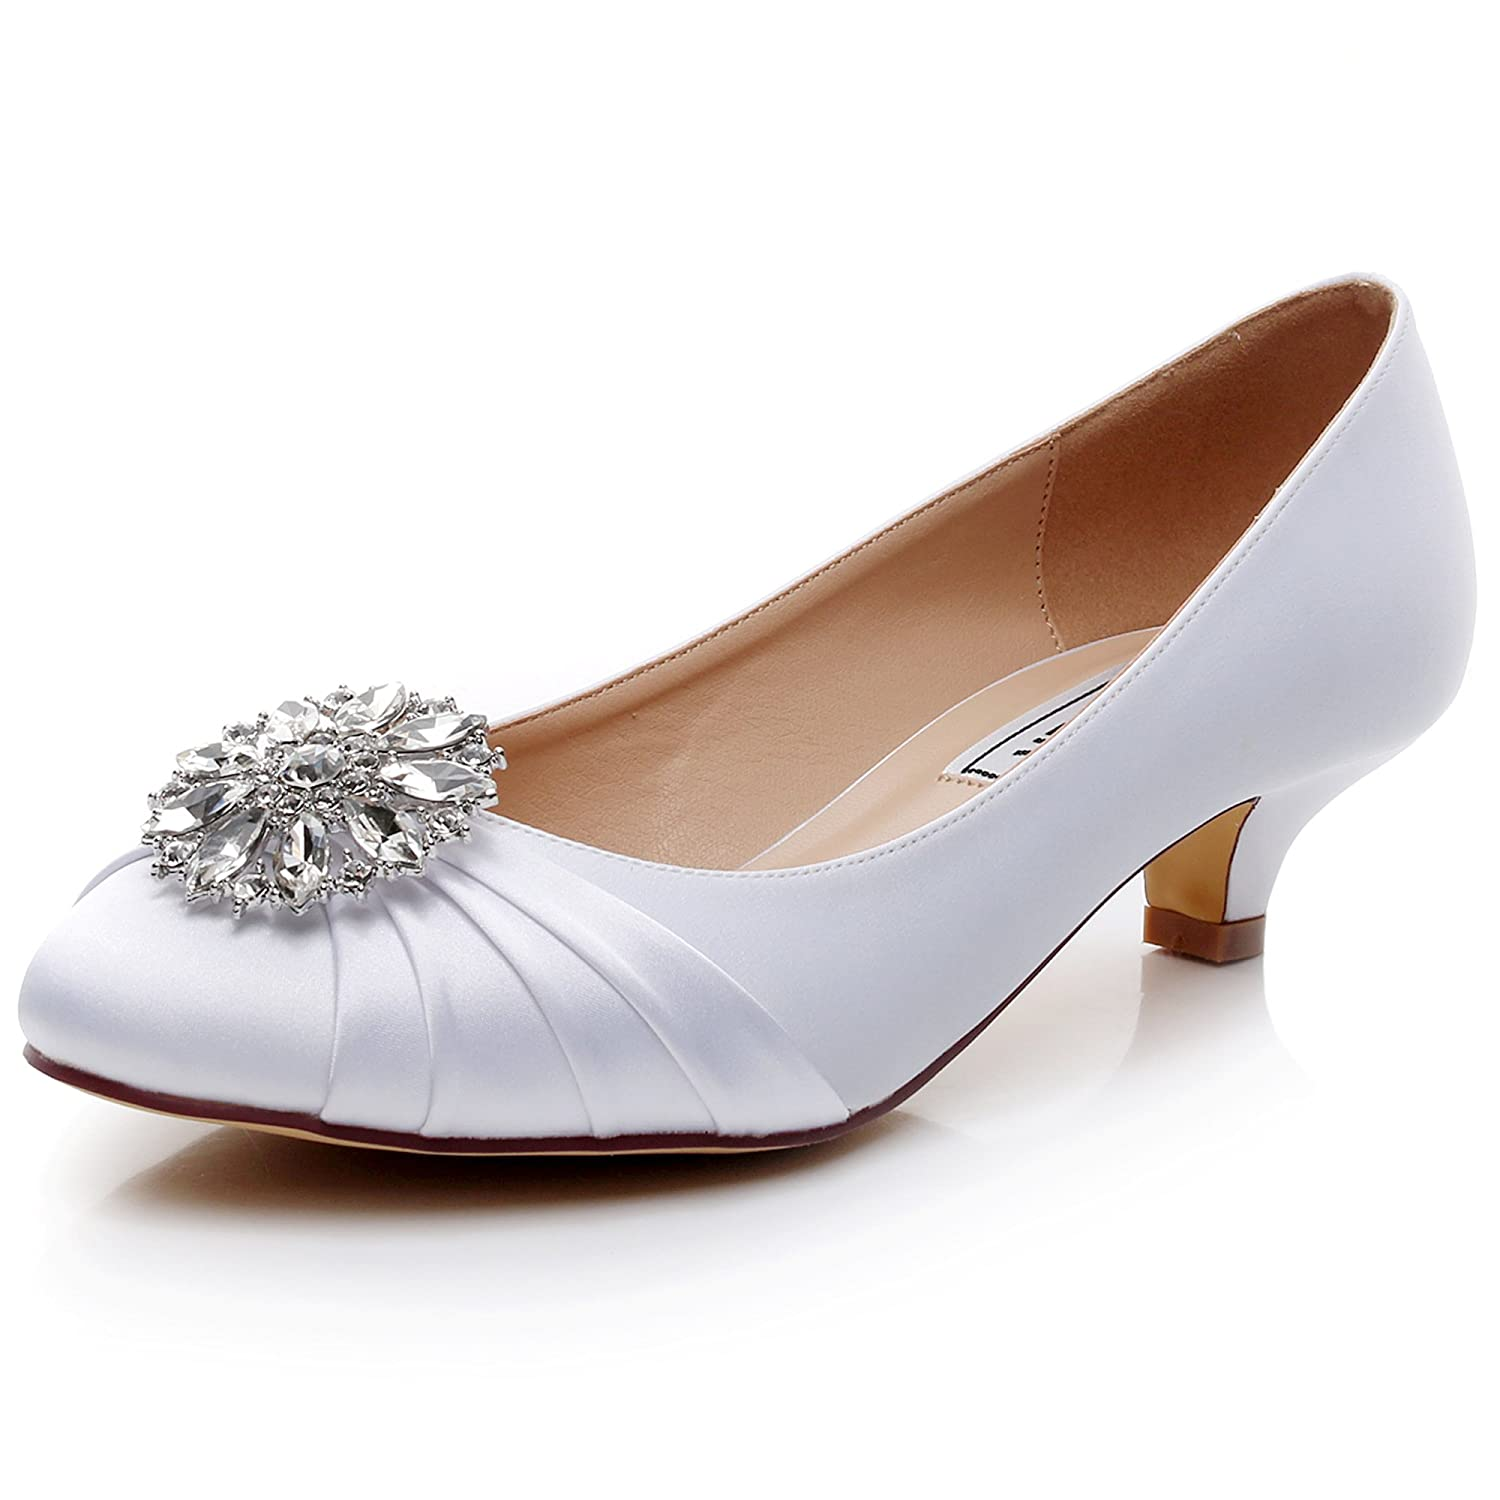 cf61675ebf4 LUXVEER Kitten Heel Satin Wedding Shoes Sexy Women Shoes with Rhinestone  Low Heel 1.5 inch RS-2067